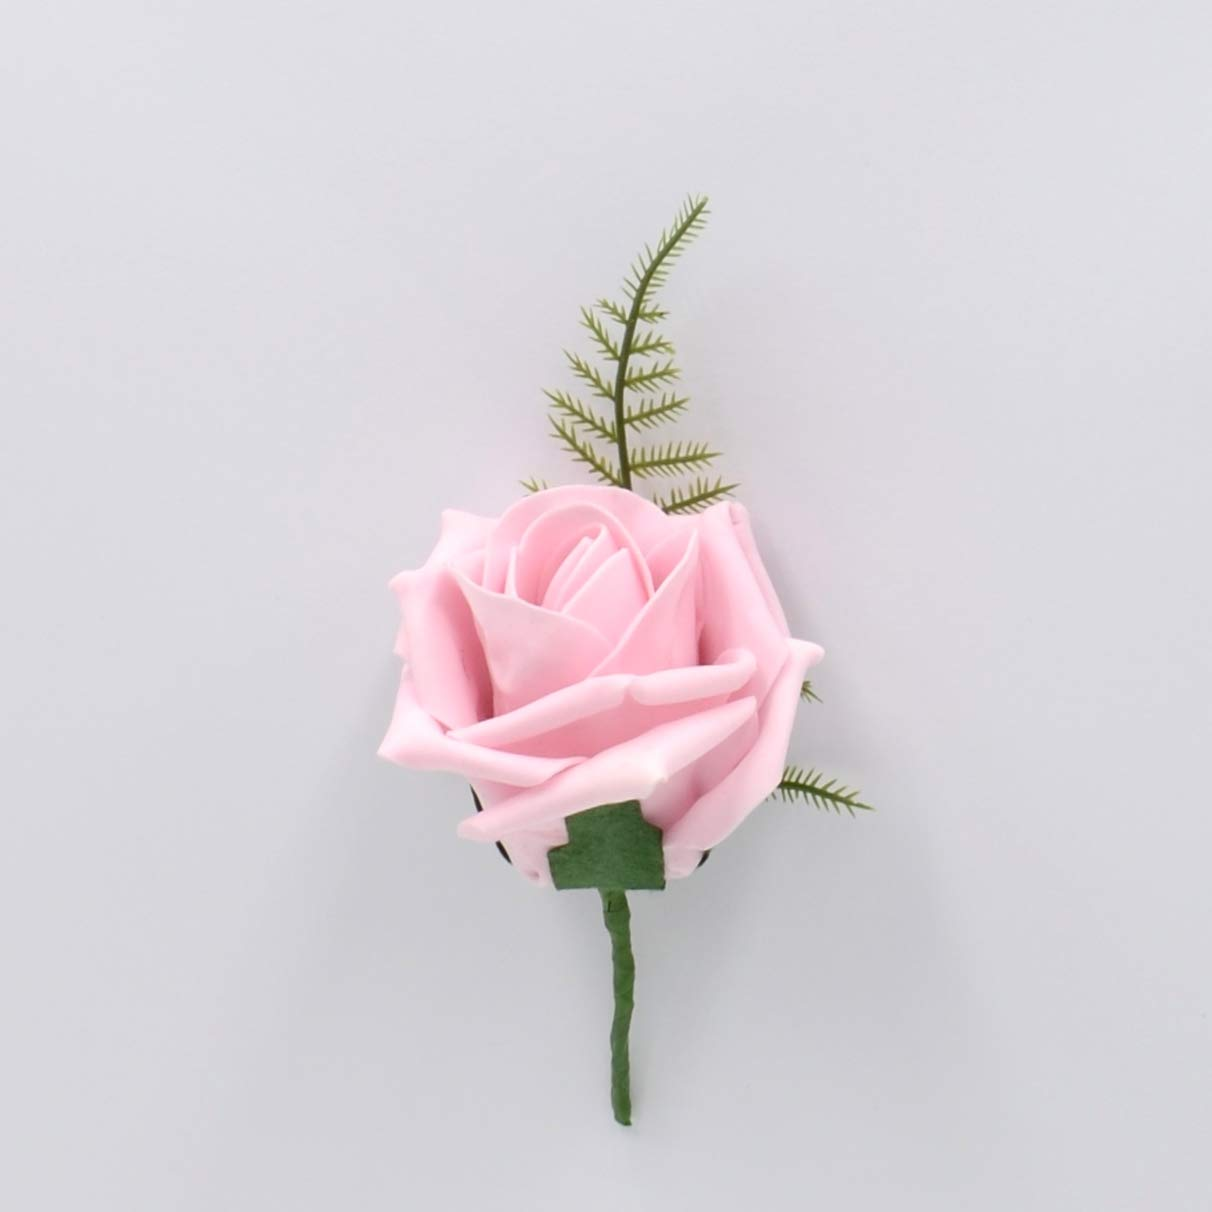 Artificial Wedding Flowers Hand-Made by Petals Polly, Foam Rose Buttonhole in Antique Pink PETALS POLLY FLOWERS